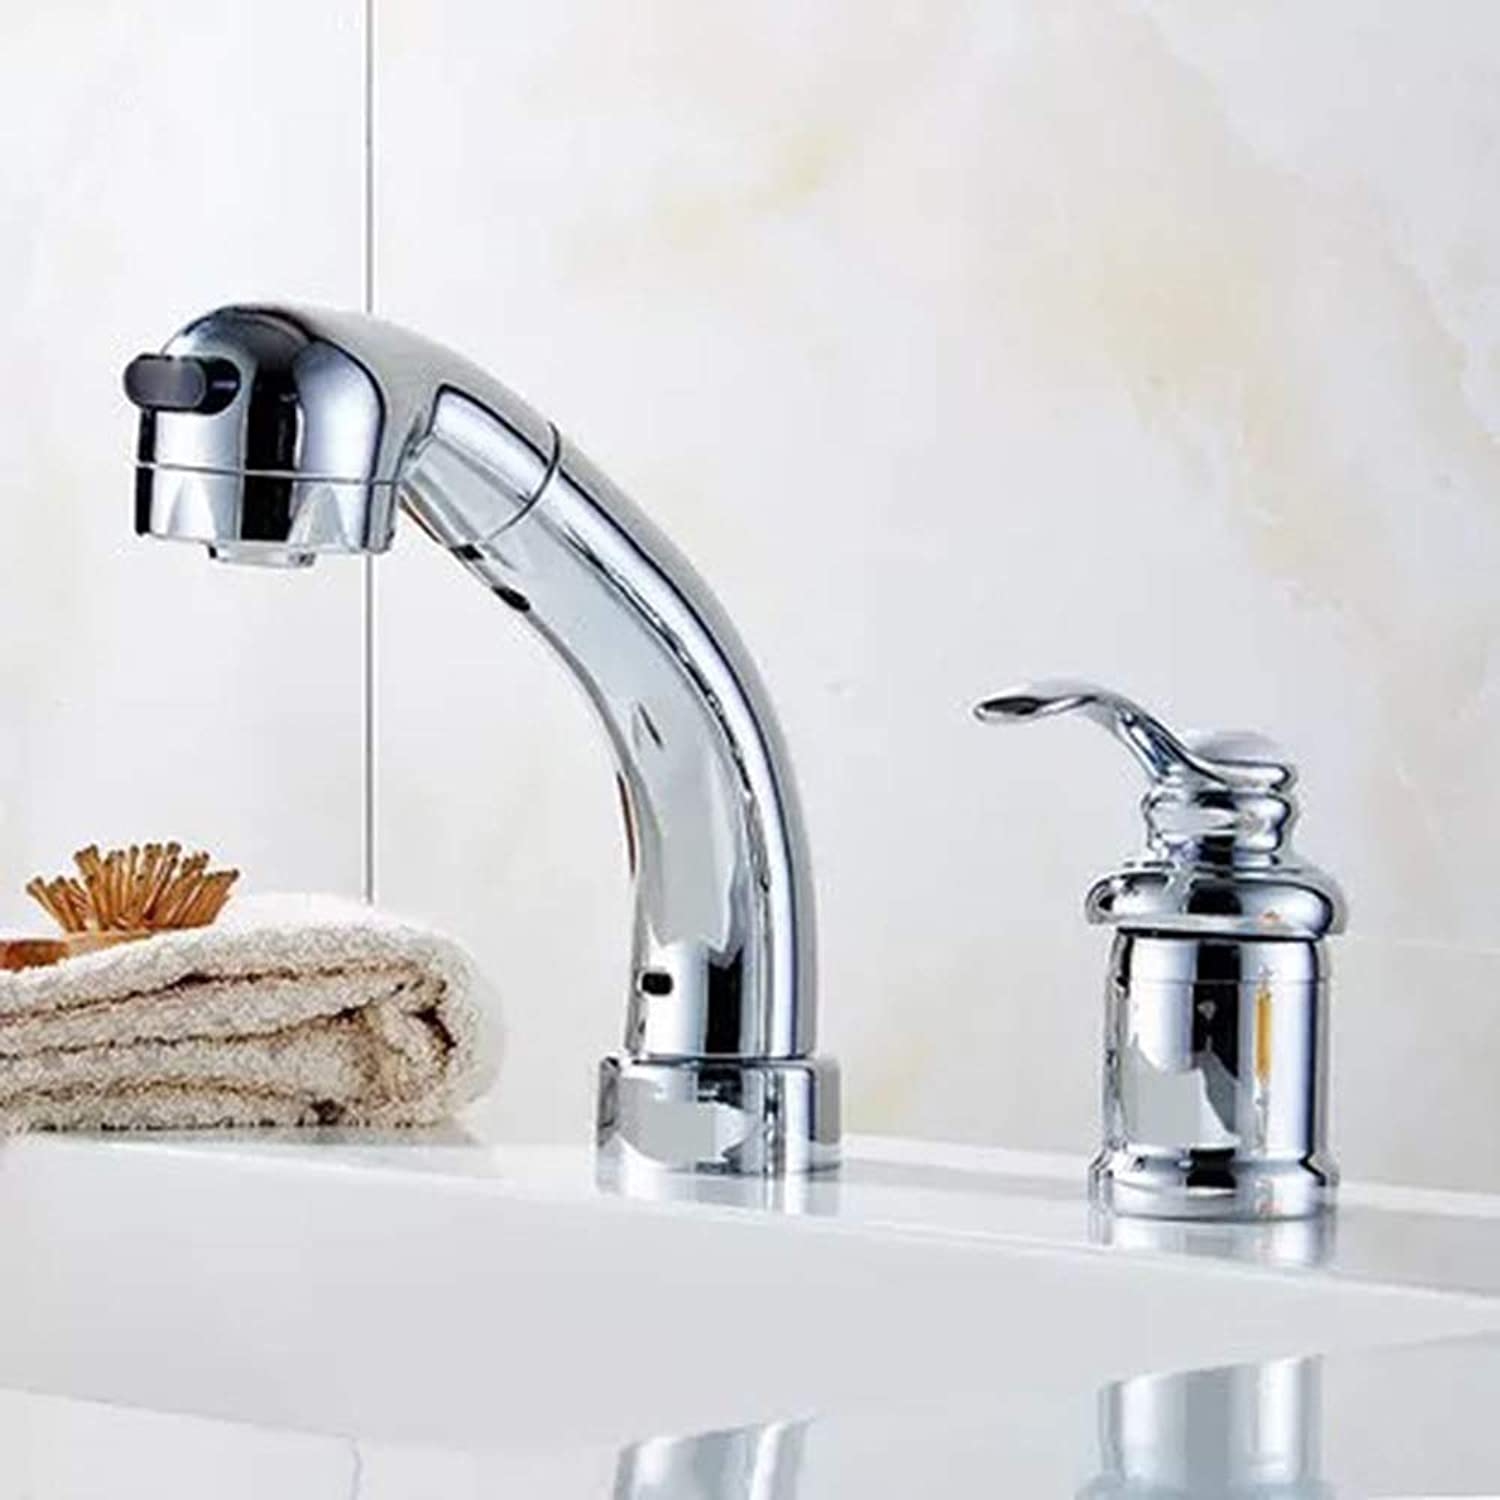 AmzGxp Split Double Hole Hot And Cold Faucet Pull Basin Faucet Telescopic Basin Faucet With Nozzle